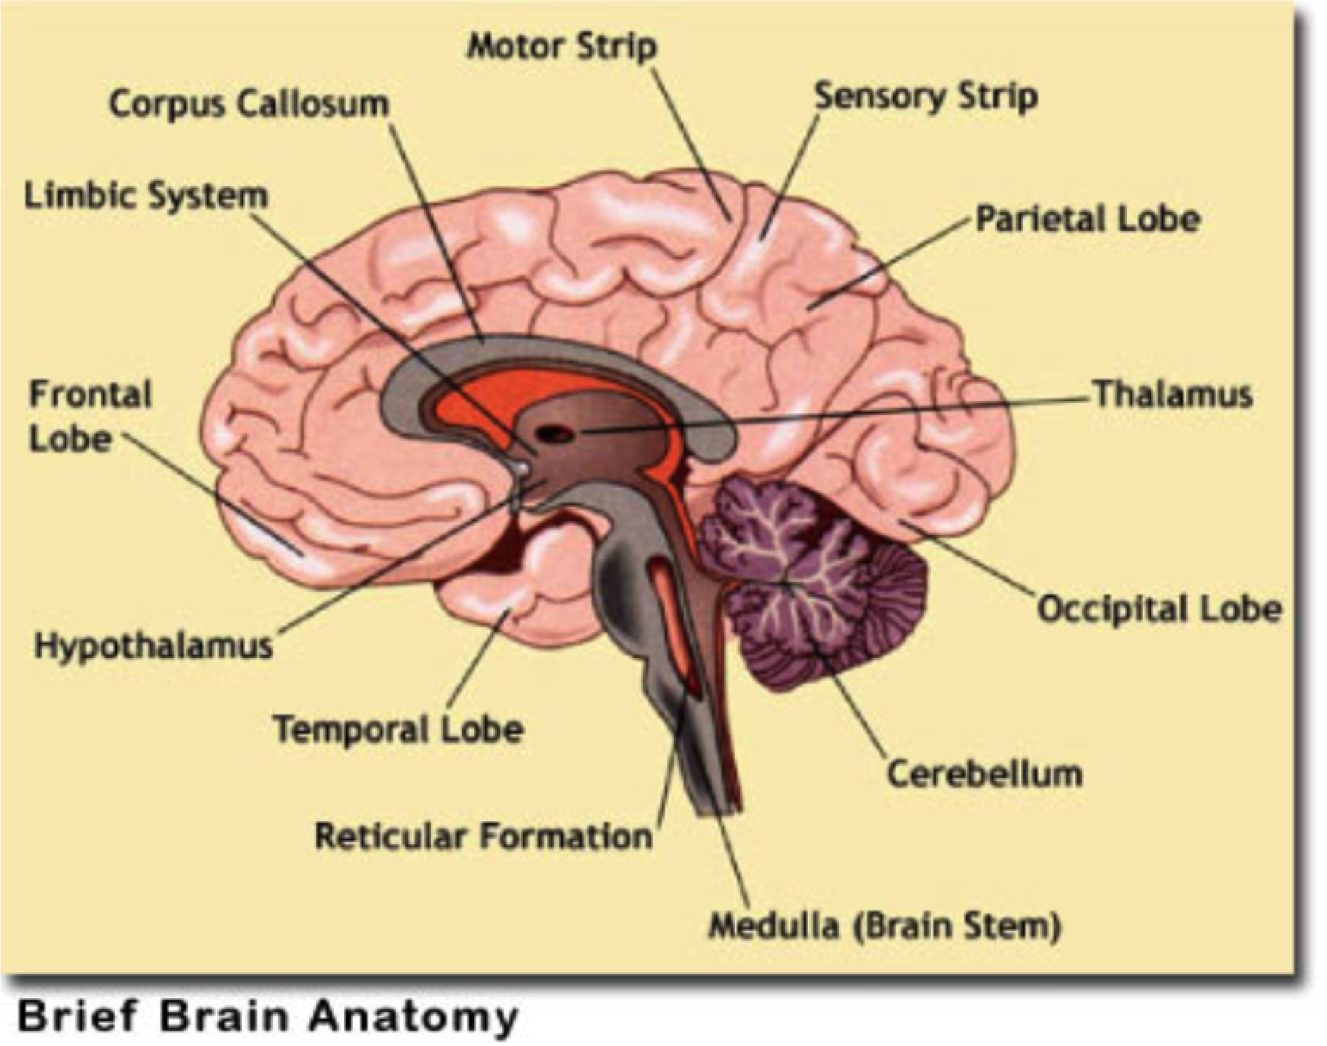 Final exam study guide doc at florida state university studyblue - Study Online Flashcards And Notes For Week Electrical Activity Of The Brain Including Reticular Formation The Area Of The Brainstem That Provides